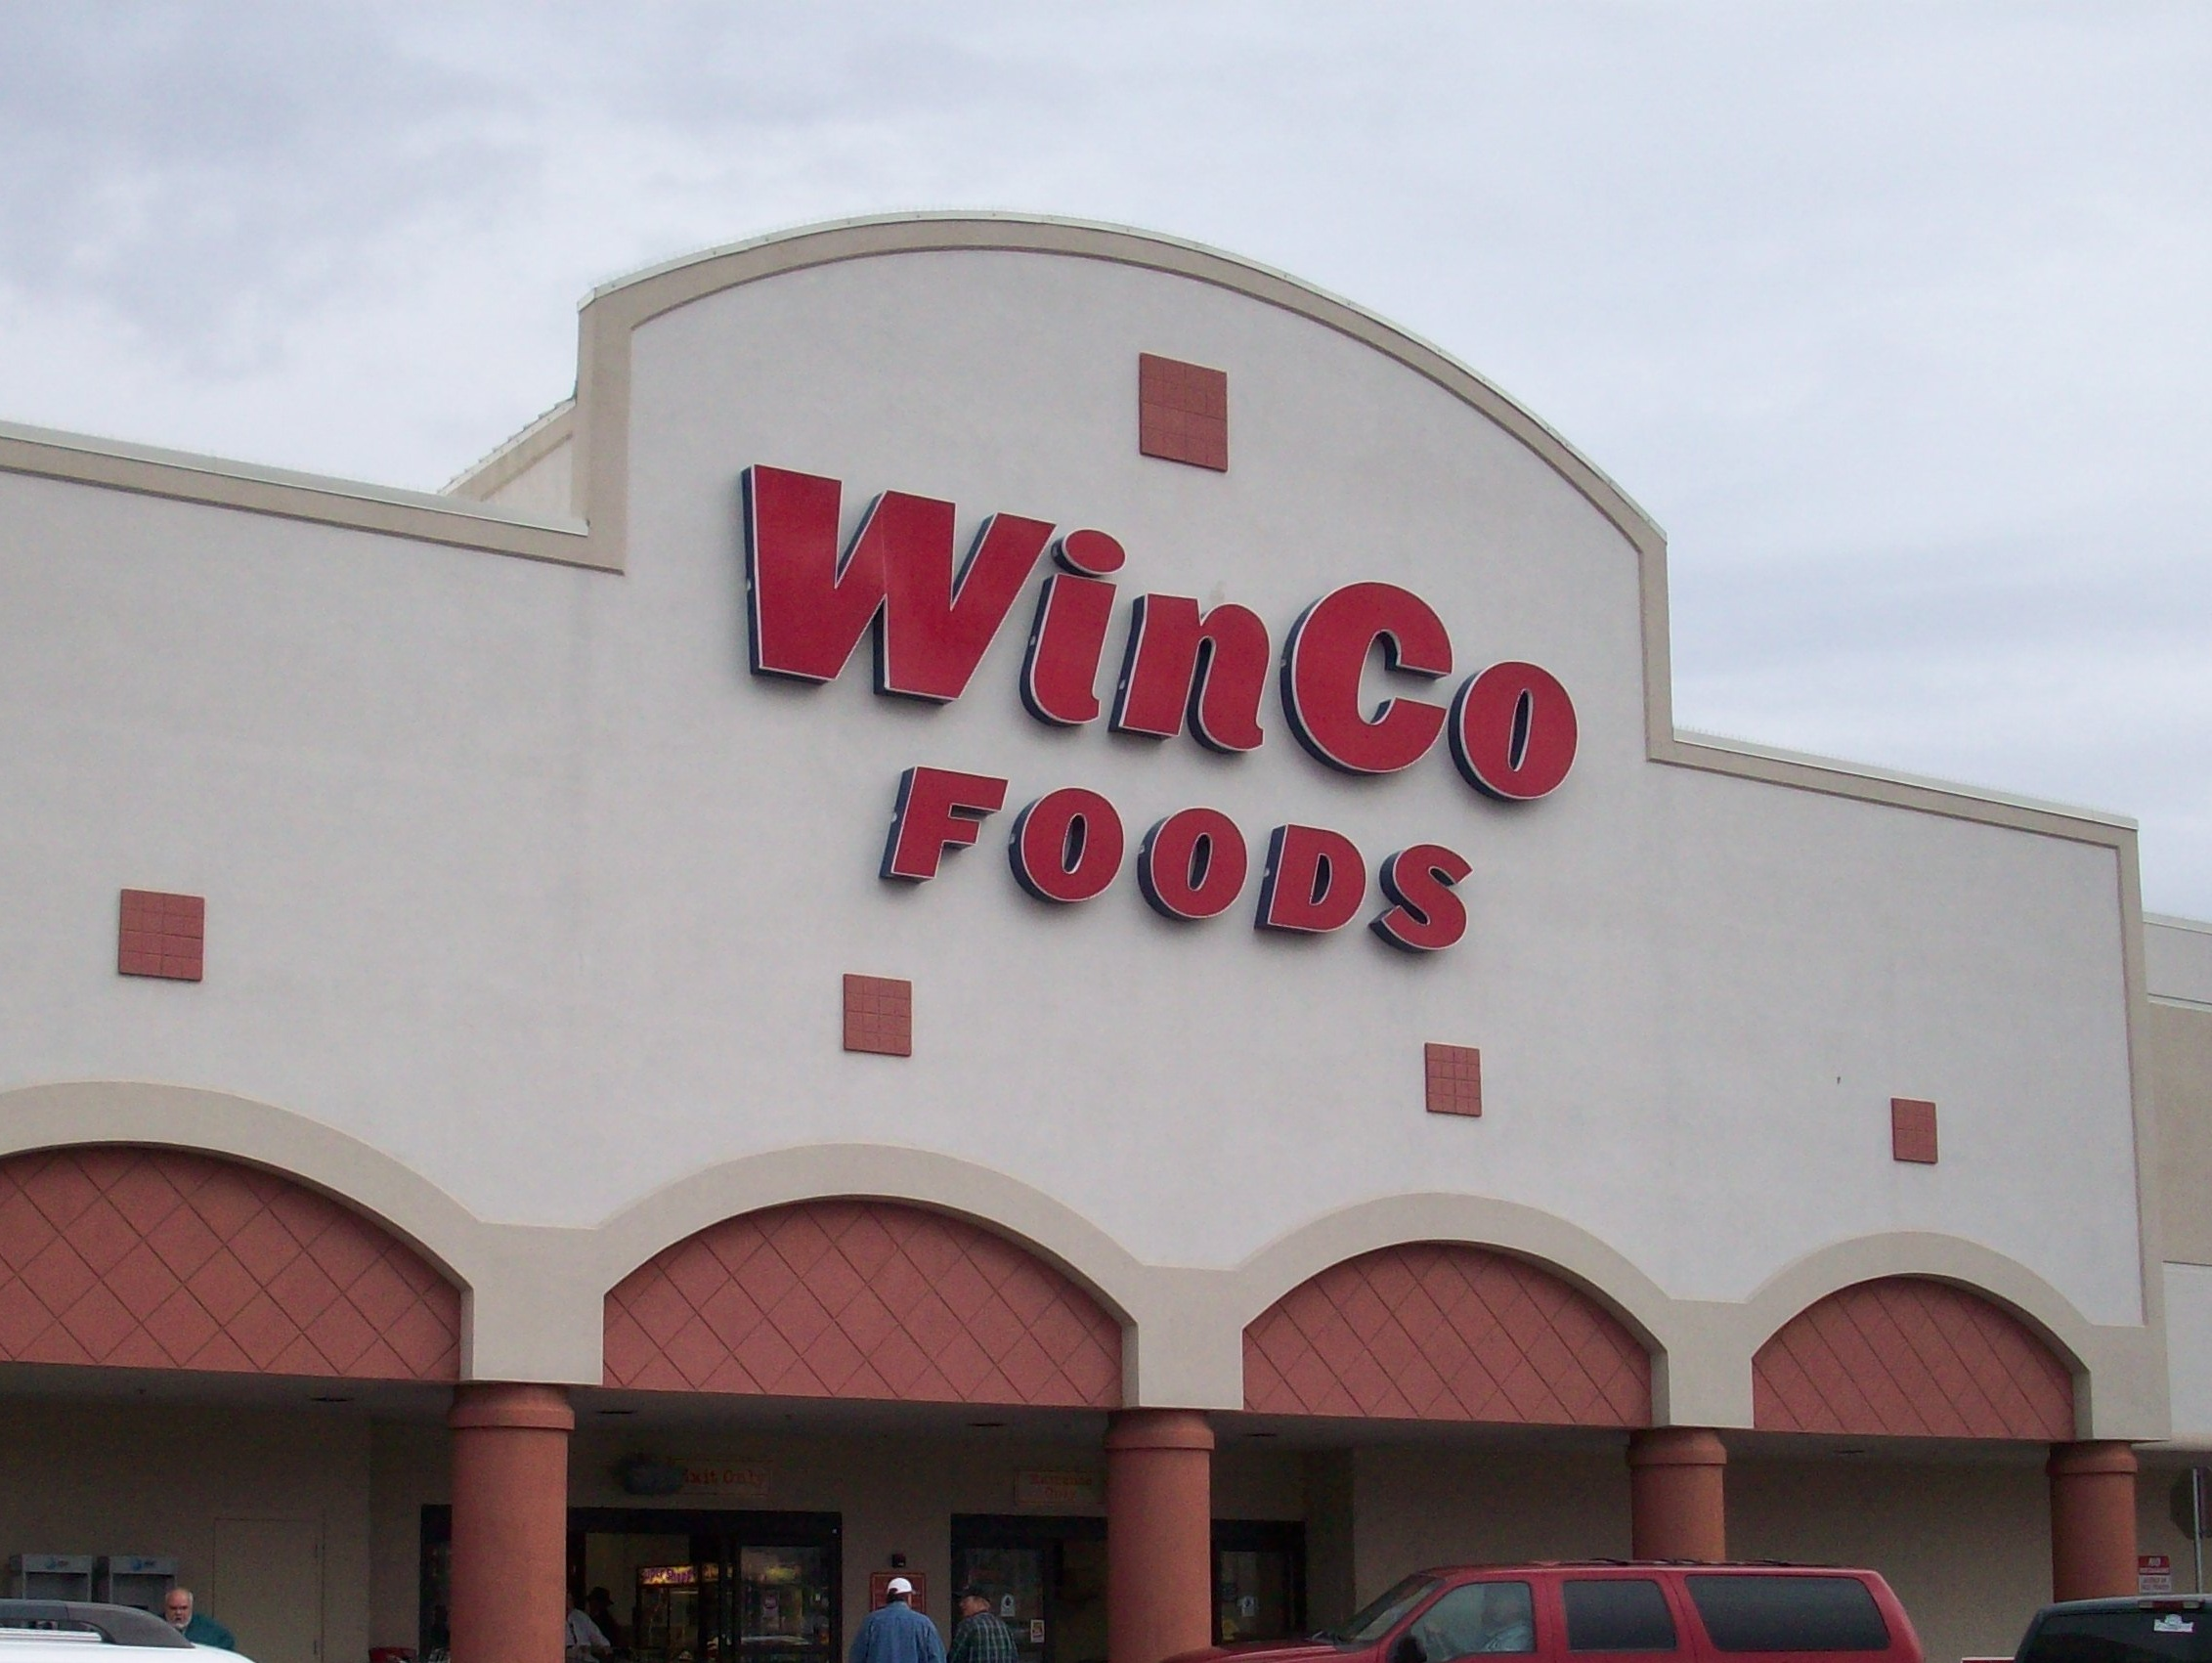 Winco Locations California Map.Winco Maps Out Okla Growth With New Distribution Center Smartbrief